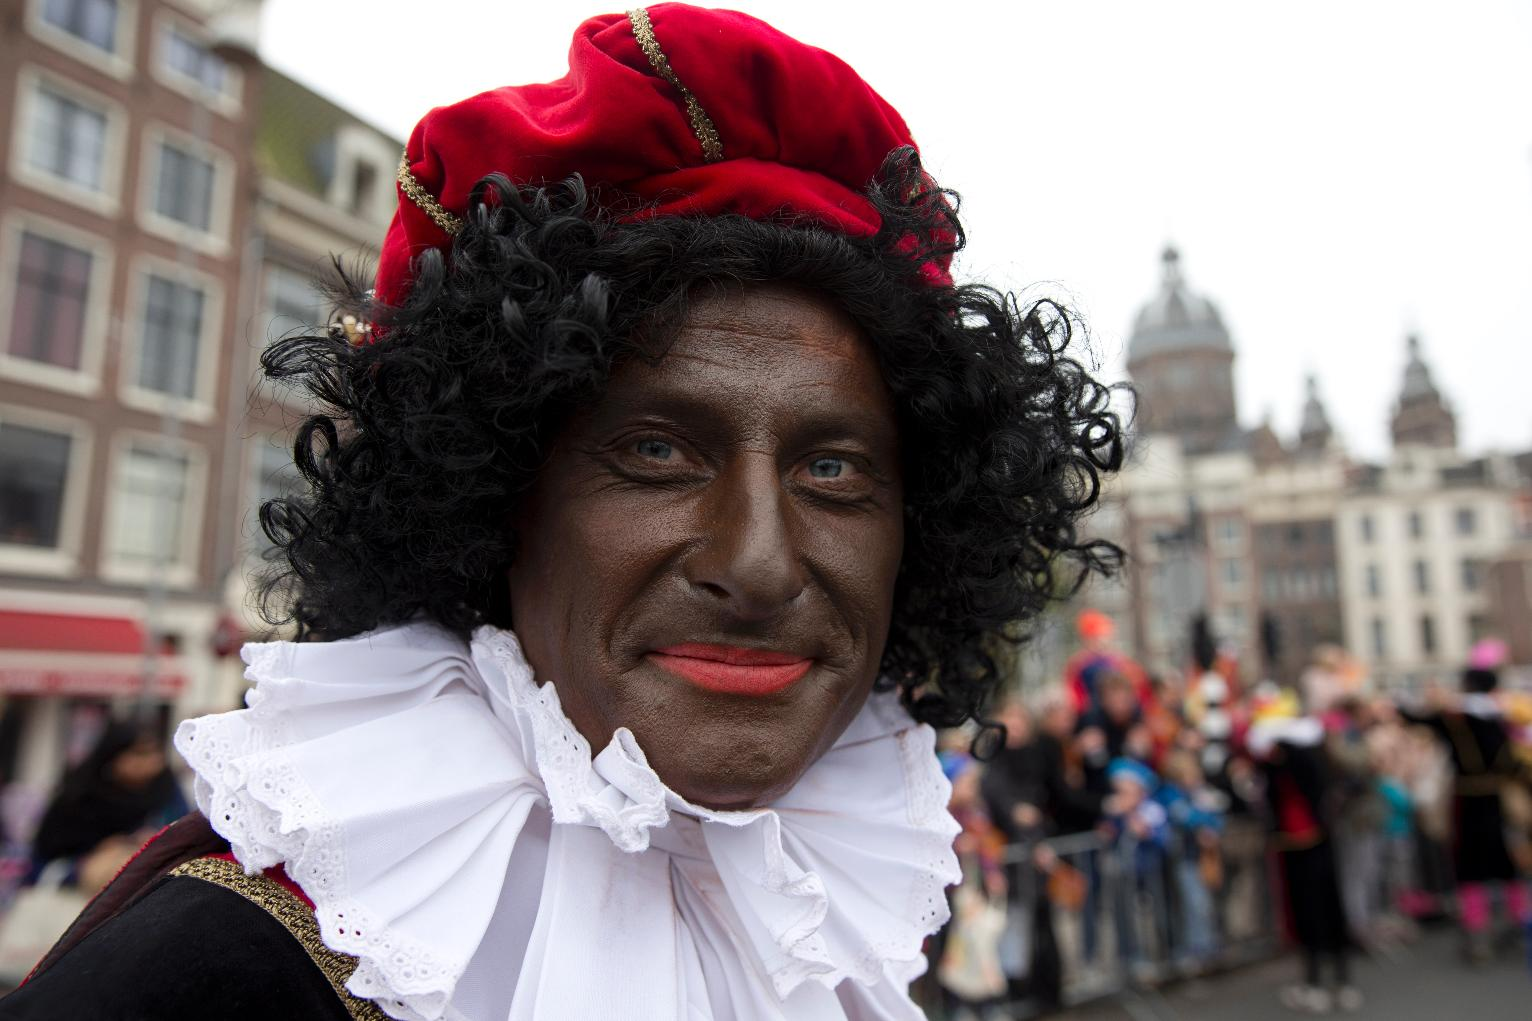 Dutch court: Black Pete is a negative stereotype - US News